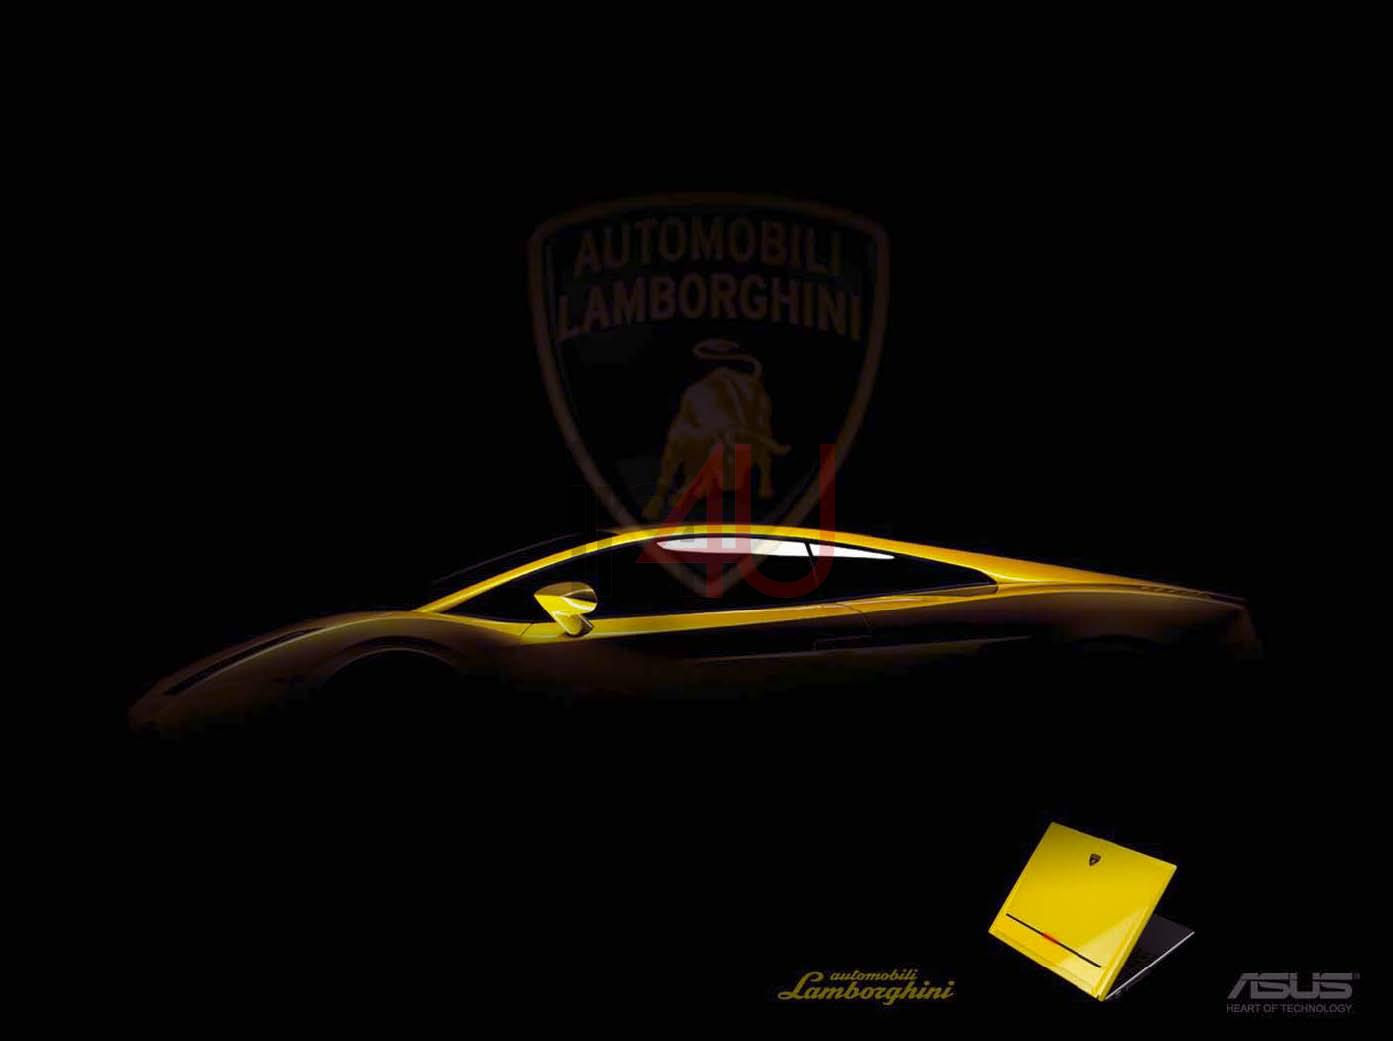 Asus Lamborghini Series HD wallpapers Hd Wallpaper 1393x1041